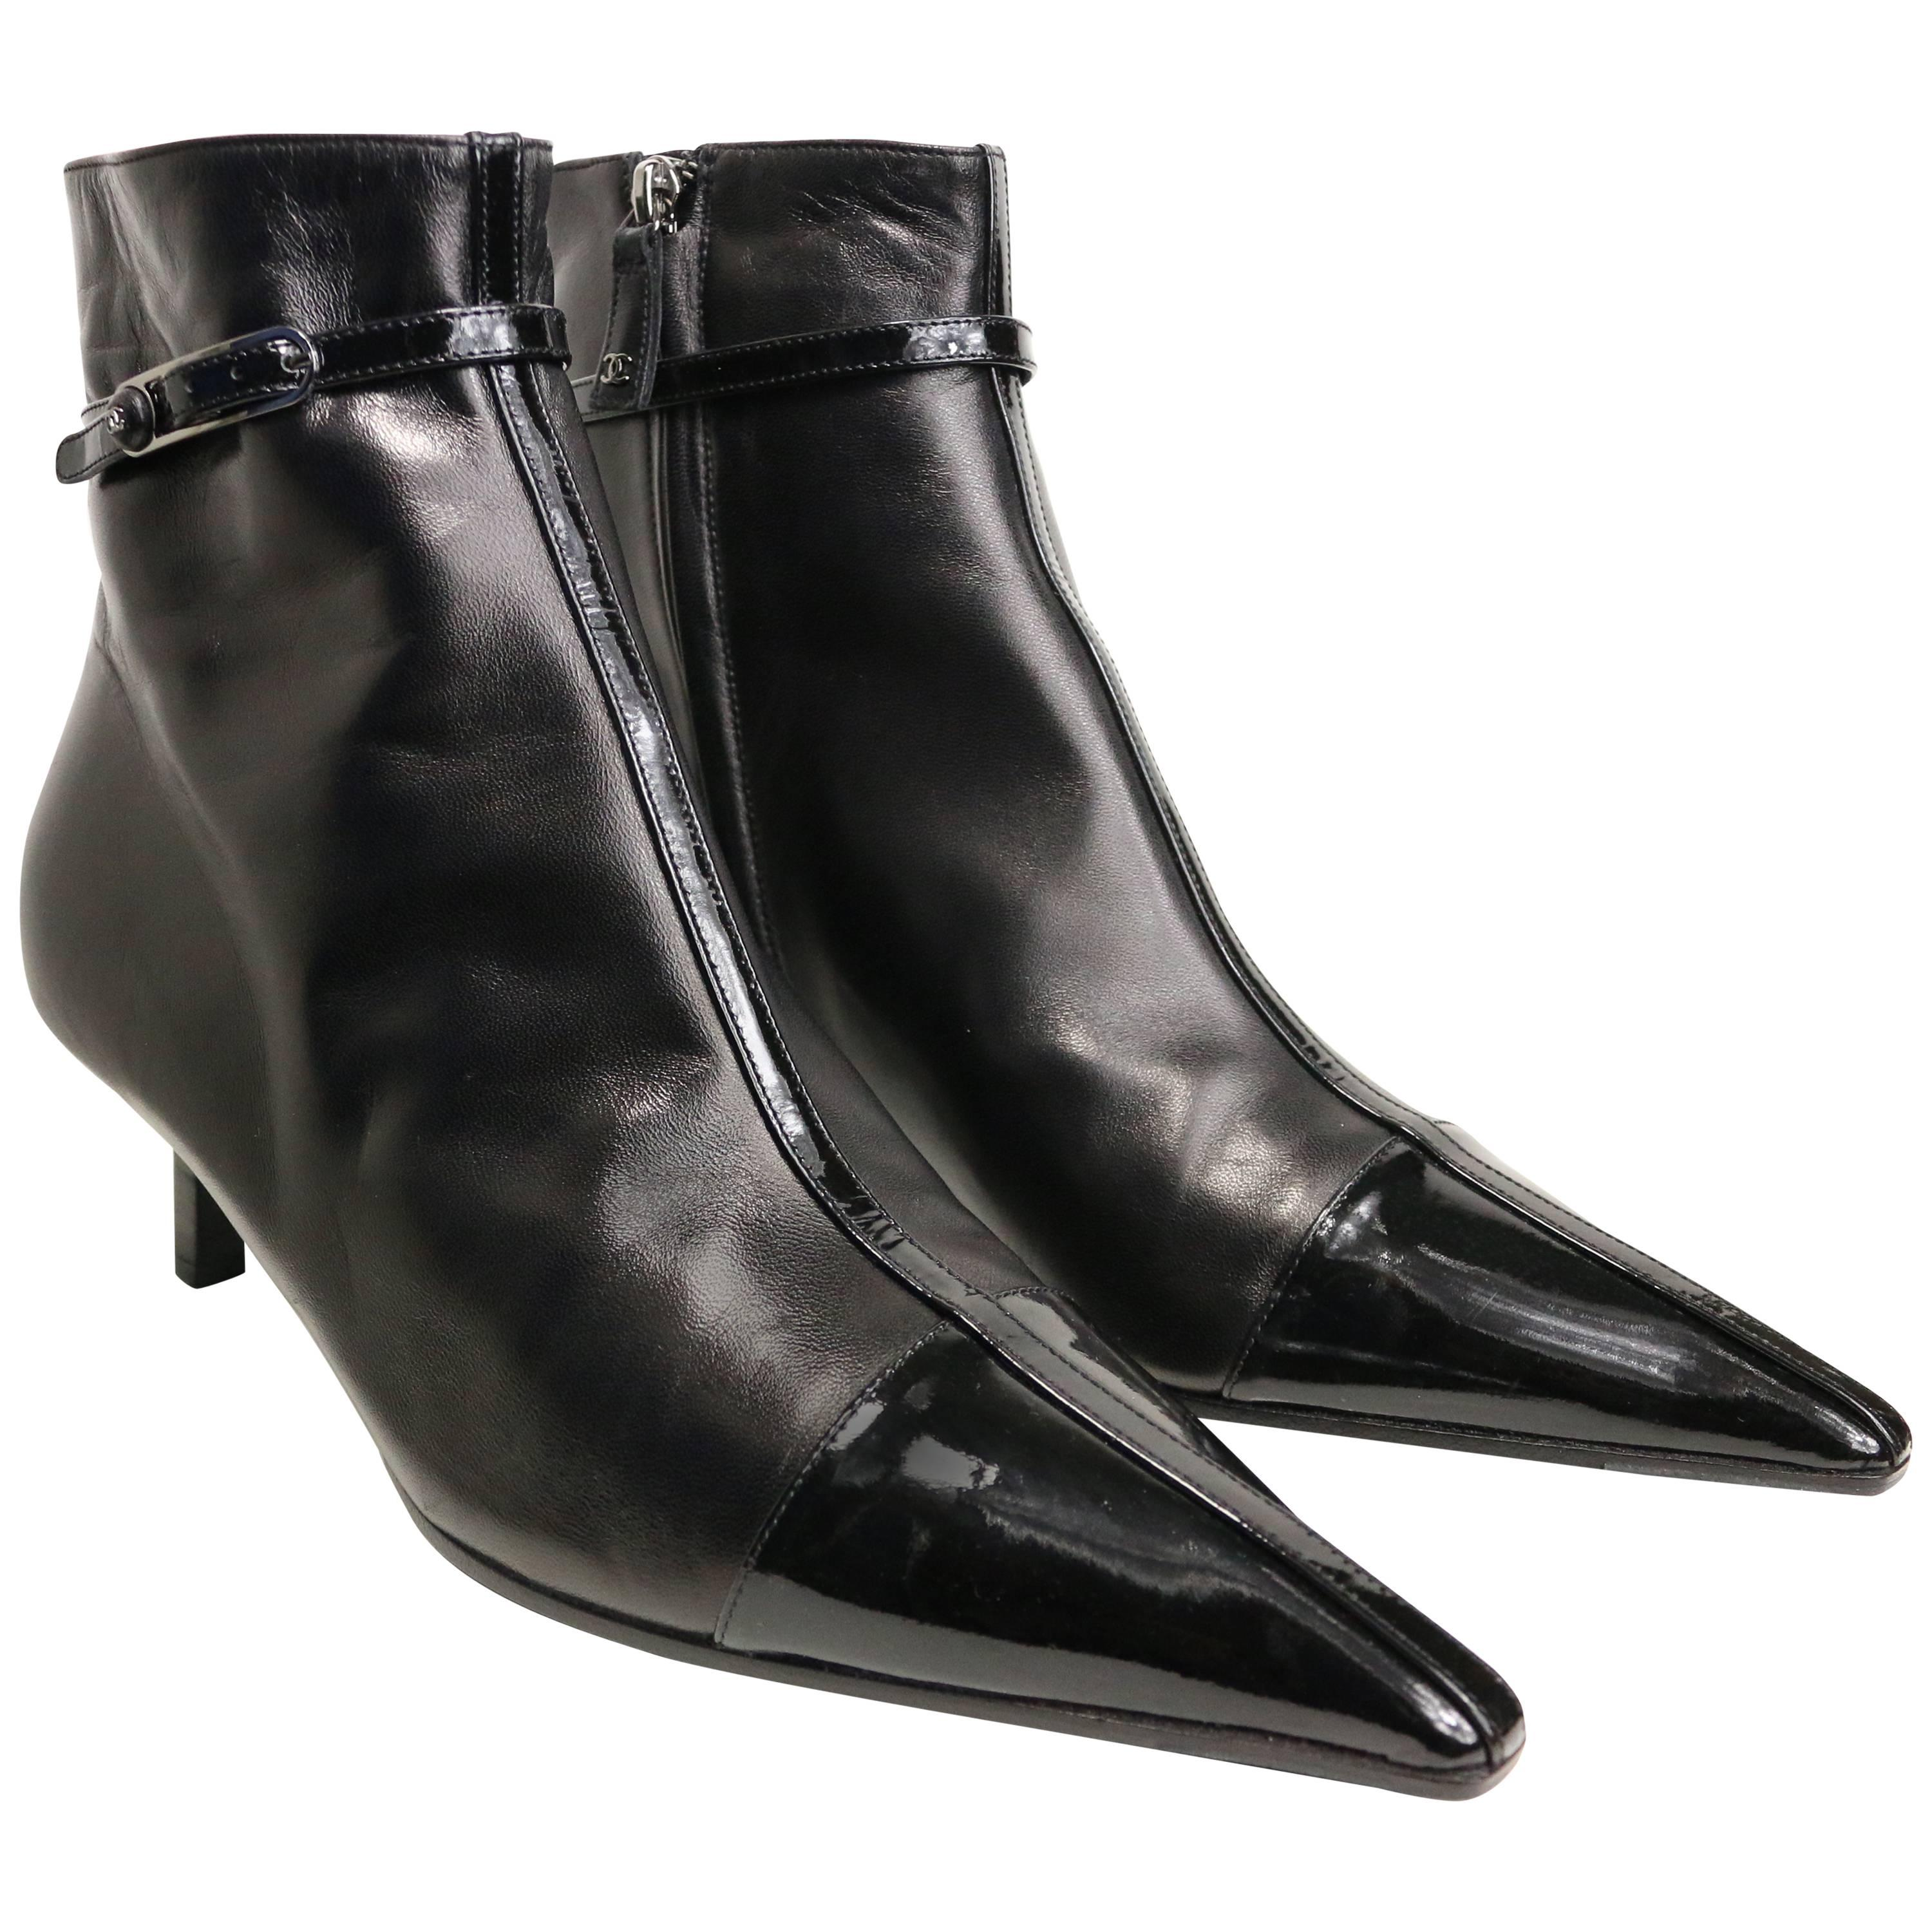 Unworn Chanel Black Leather Pointy Ankle Boots